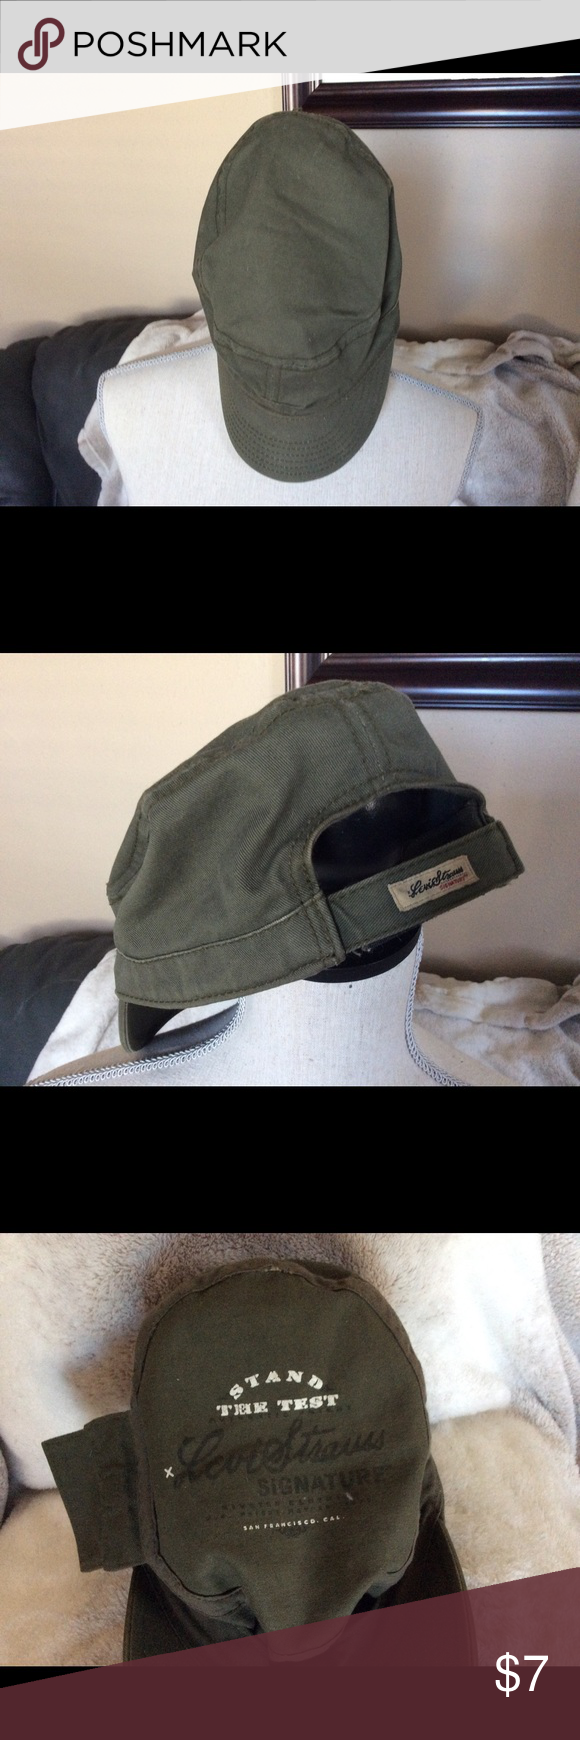 Levi Strauss Signature Military Cadet Cap Army green military cap with  adjustable strap. And pocket on the inside of the cap. Signature logo all  over the ... 02a10d6cc35